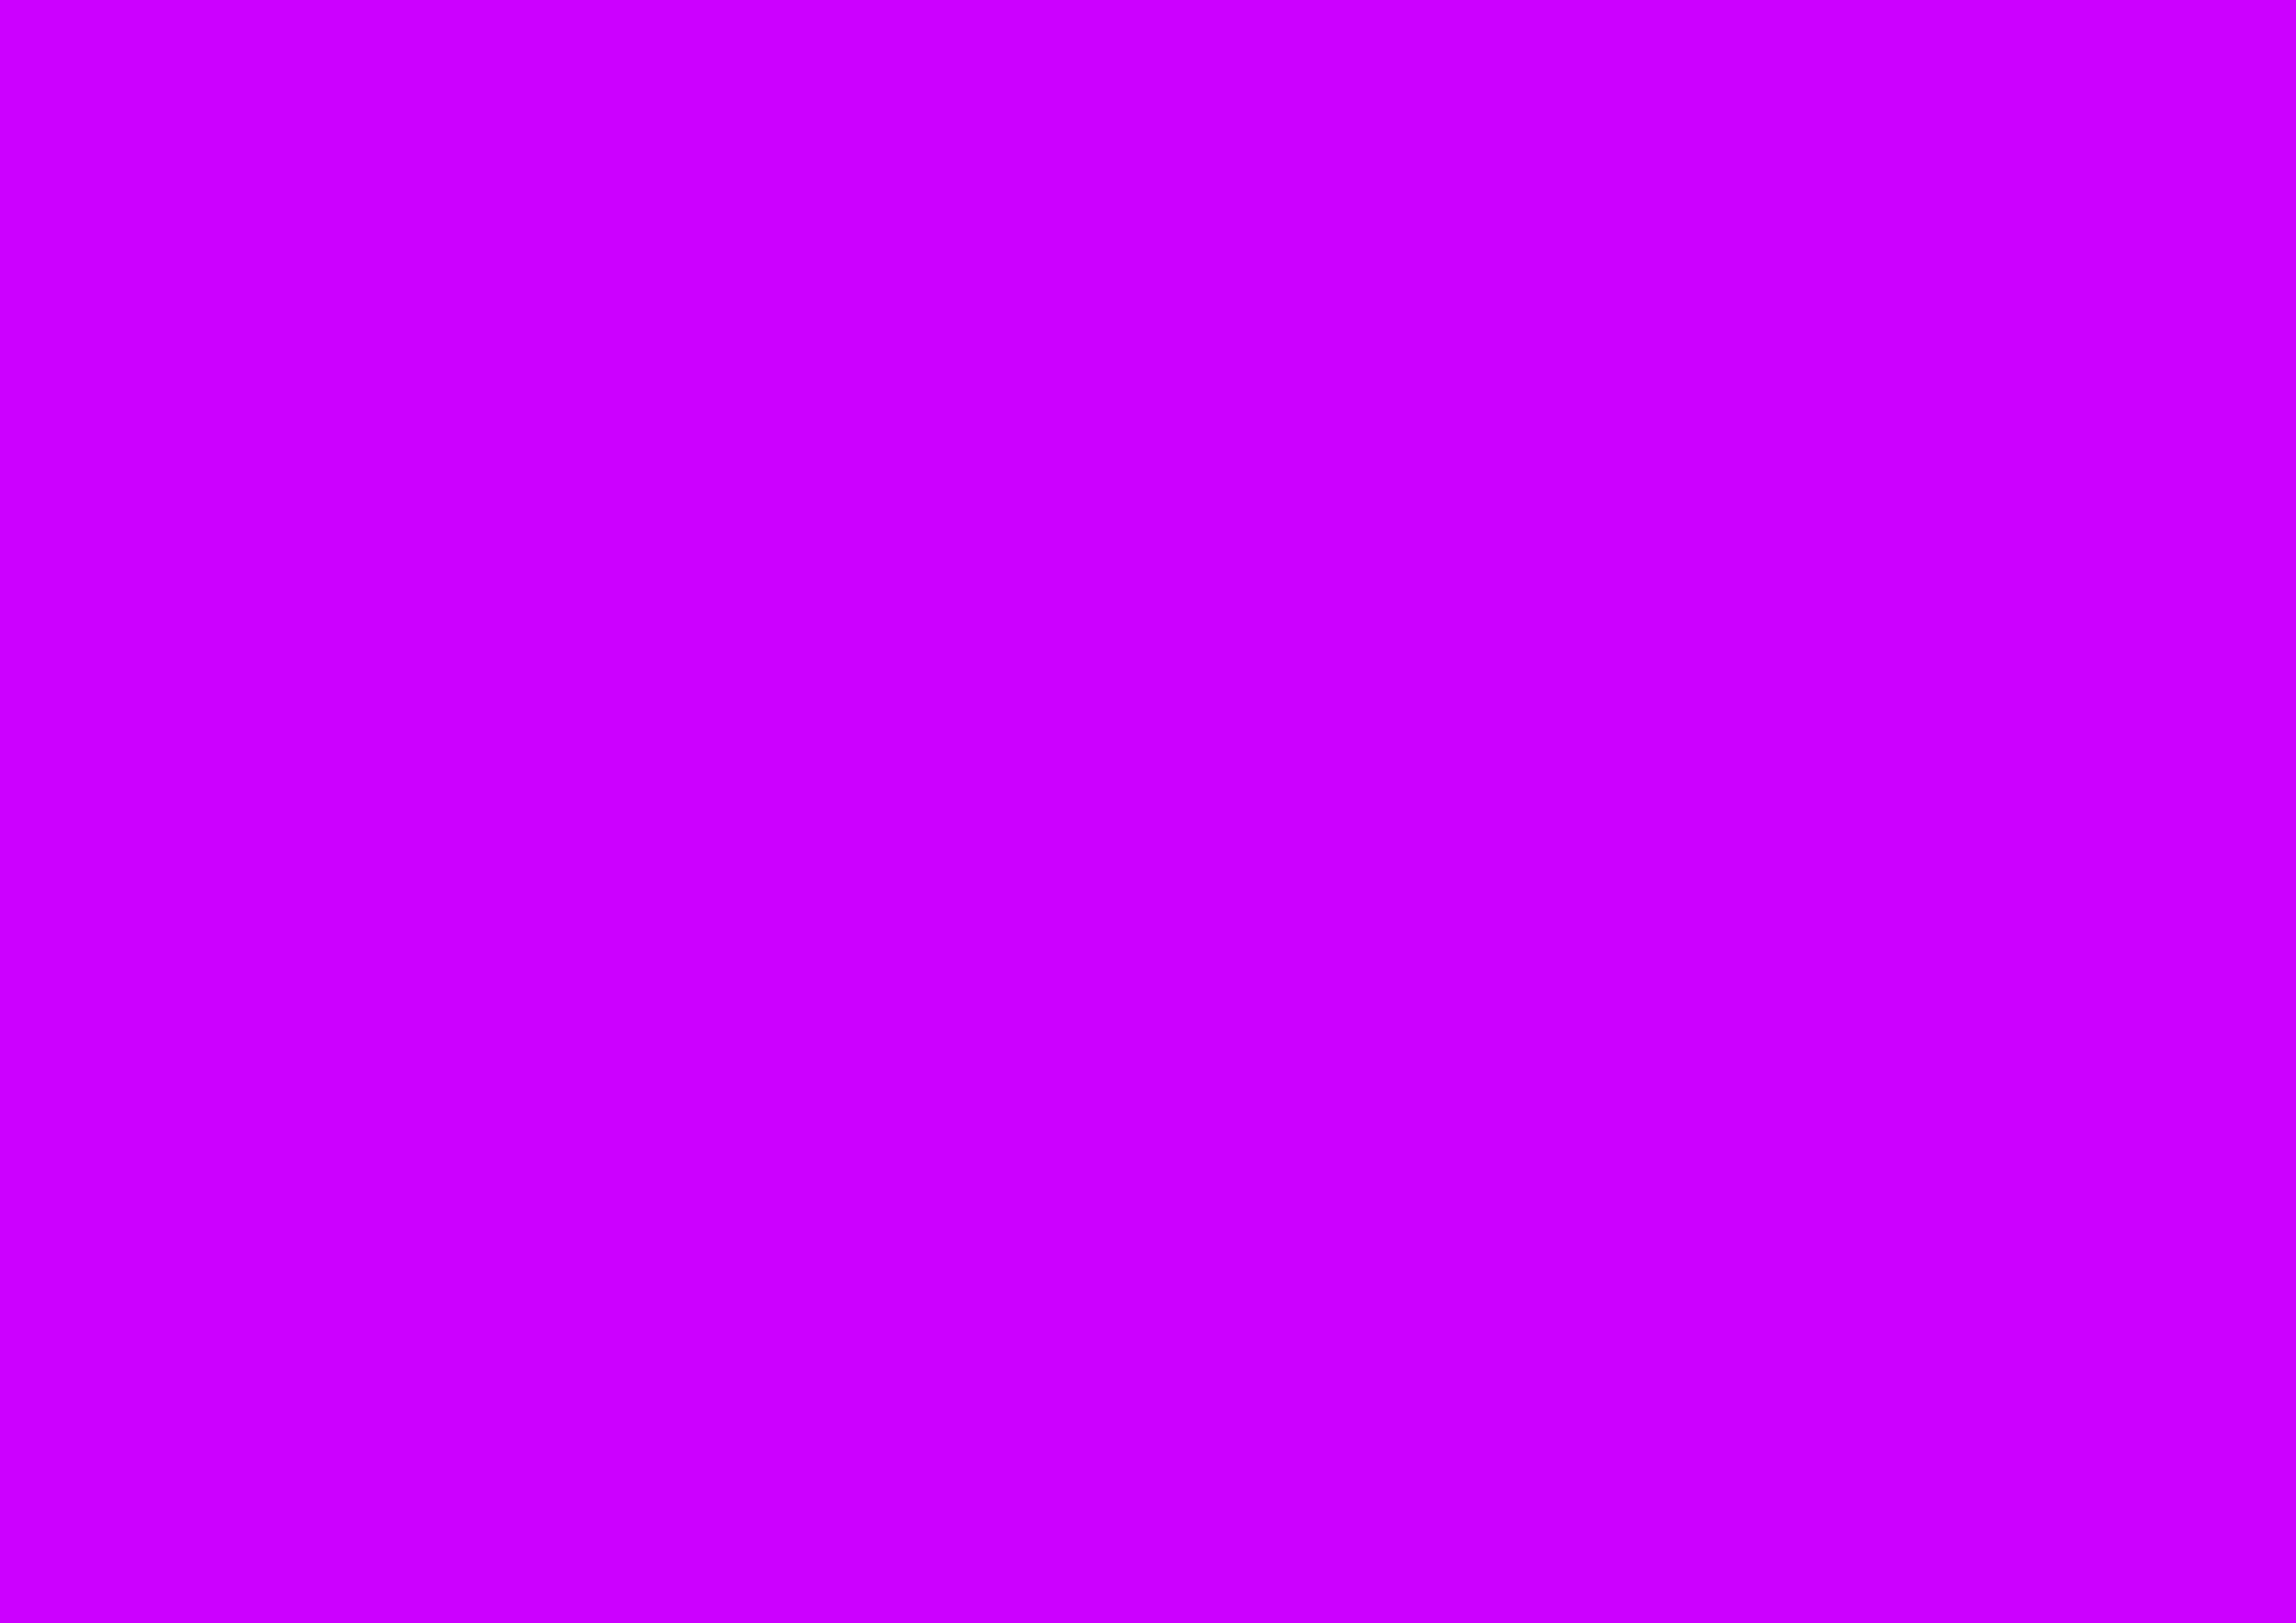 3508x2480 Vivid Orchid Solid Color Background